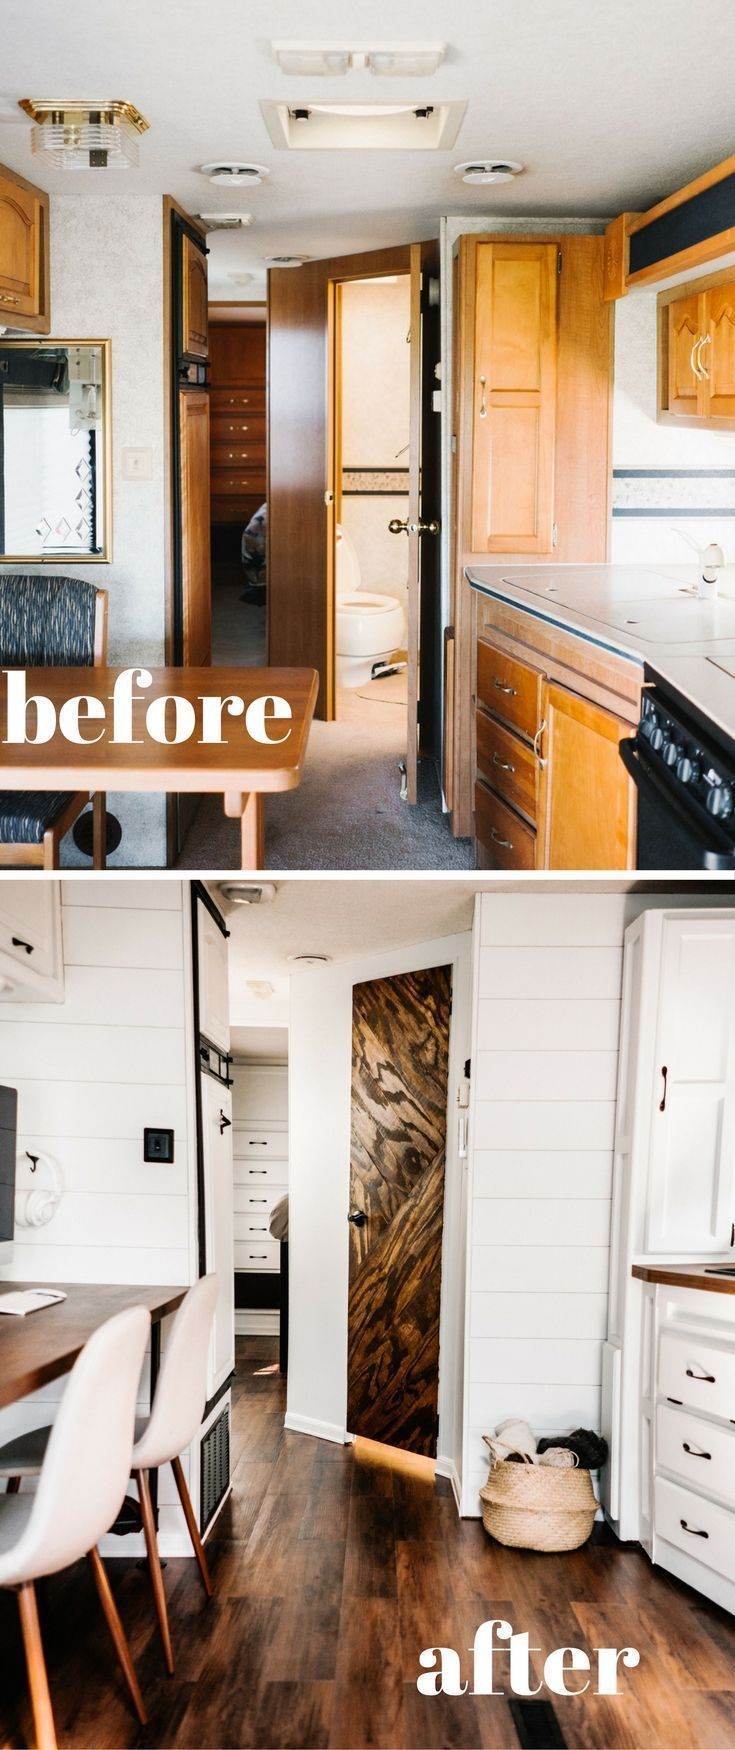 About to start a DIY RV remodel? Learn how other full time RVers did it with tips on budget rv renovations, before and after pictures, LIVE tours and ! #rvcampertips